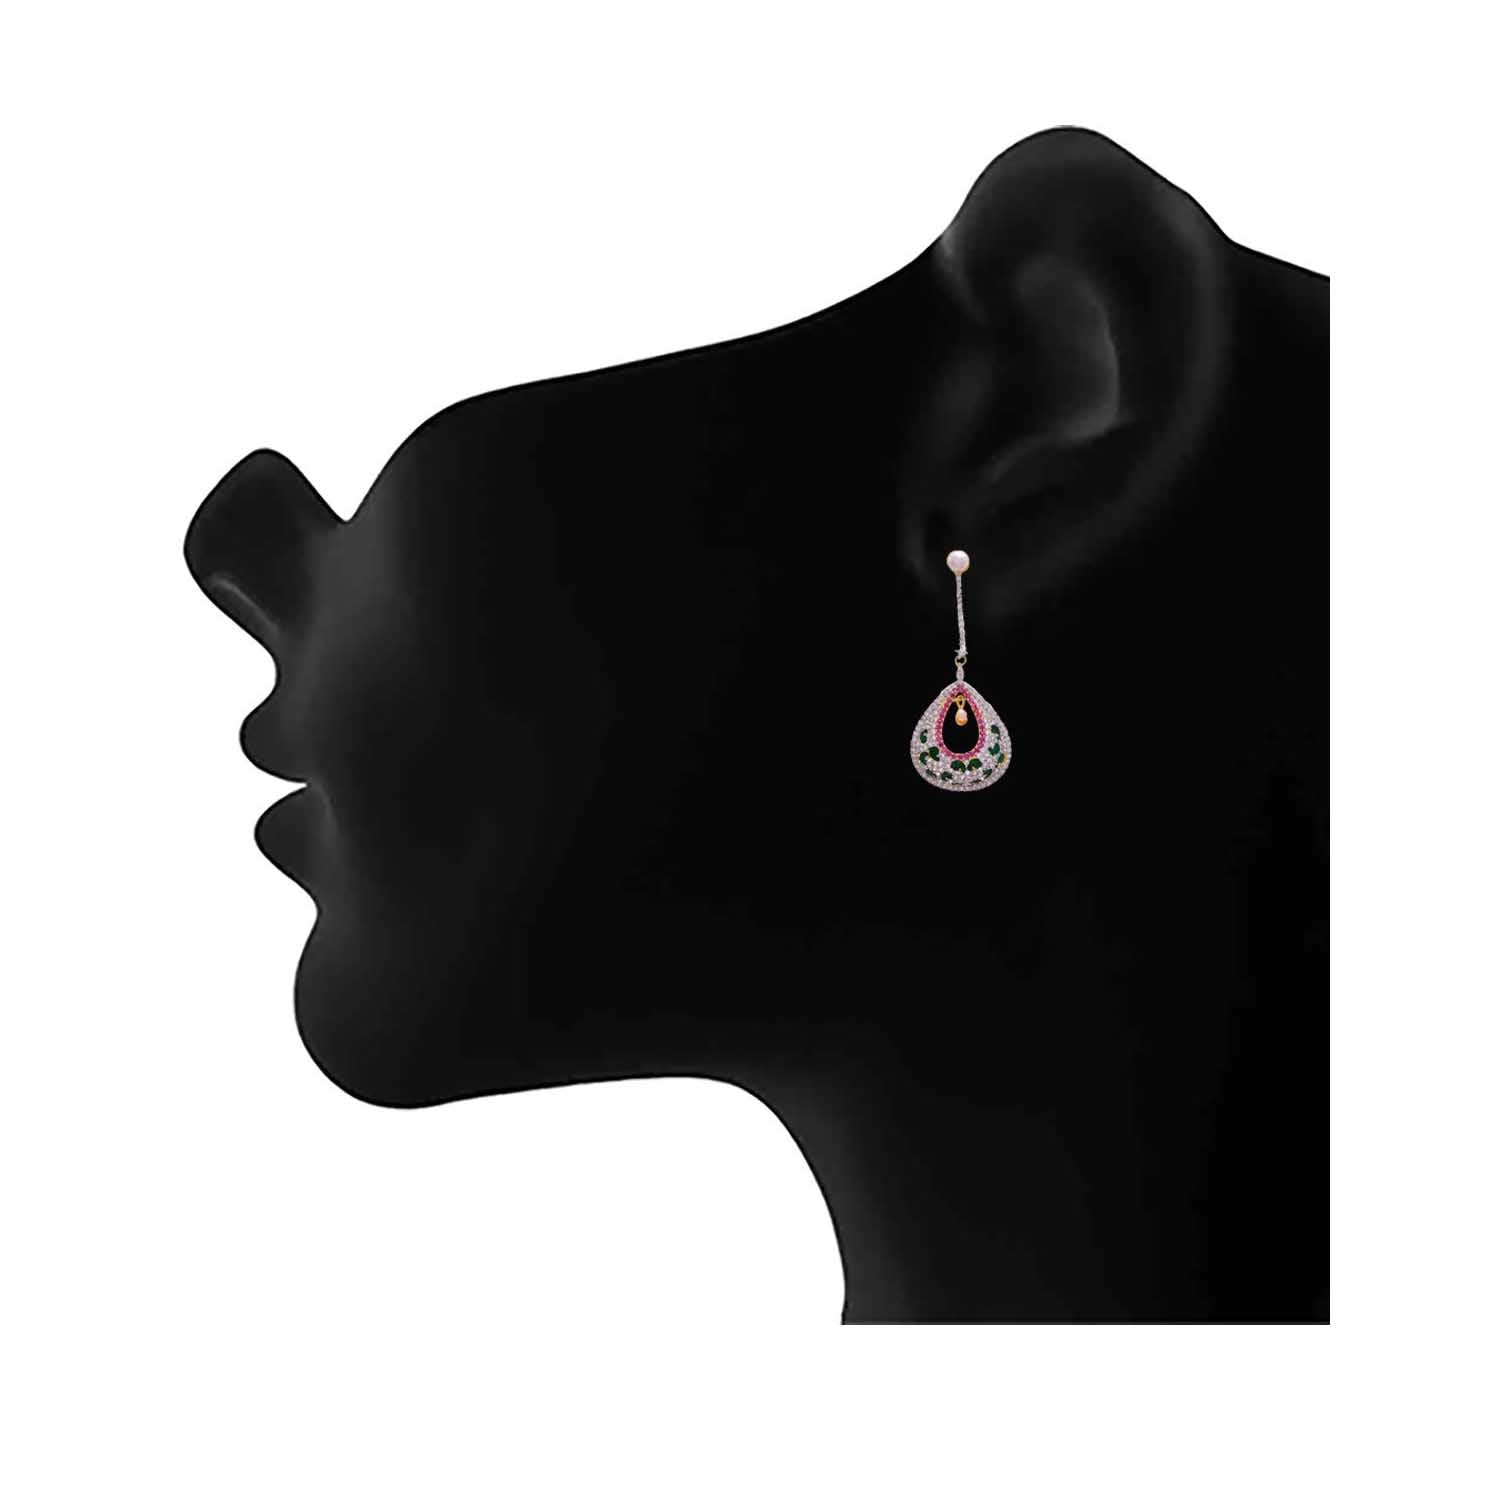 JFL - Delicate & Delightful American Diamonds & Pearl Pink Earring for Women & Girl.